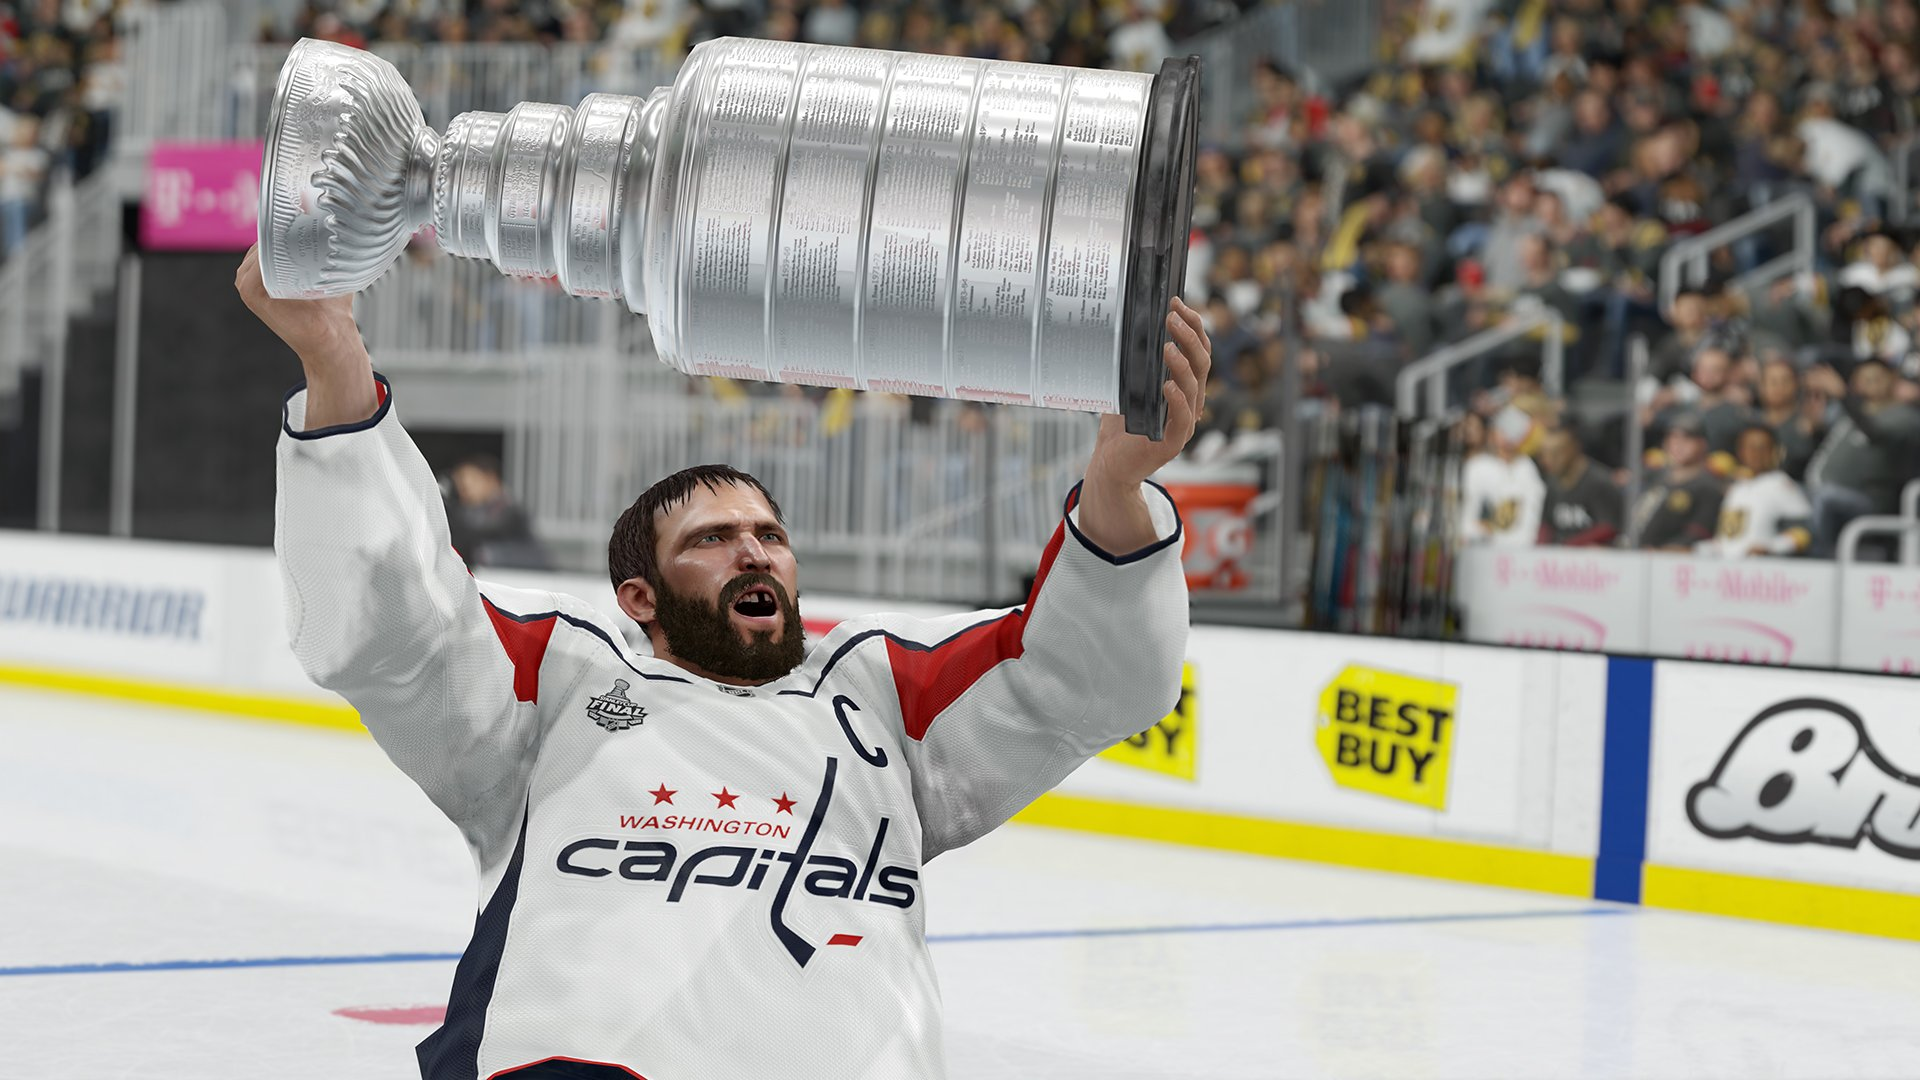 d1fa9f3cb The NHL 19 open beta will introduce players to the World of CHEL, the  spiritual successor to the EA Sports Hockey League mode. In World of CHEL,  ...